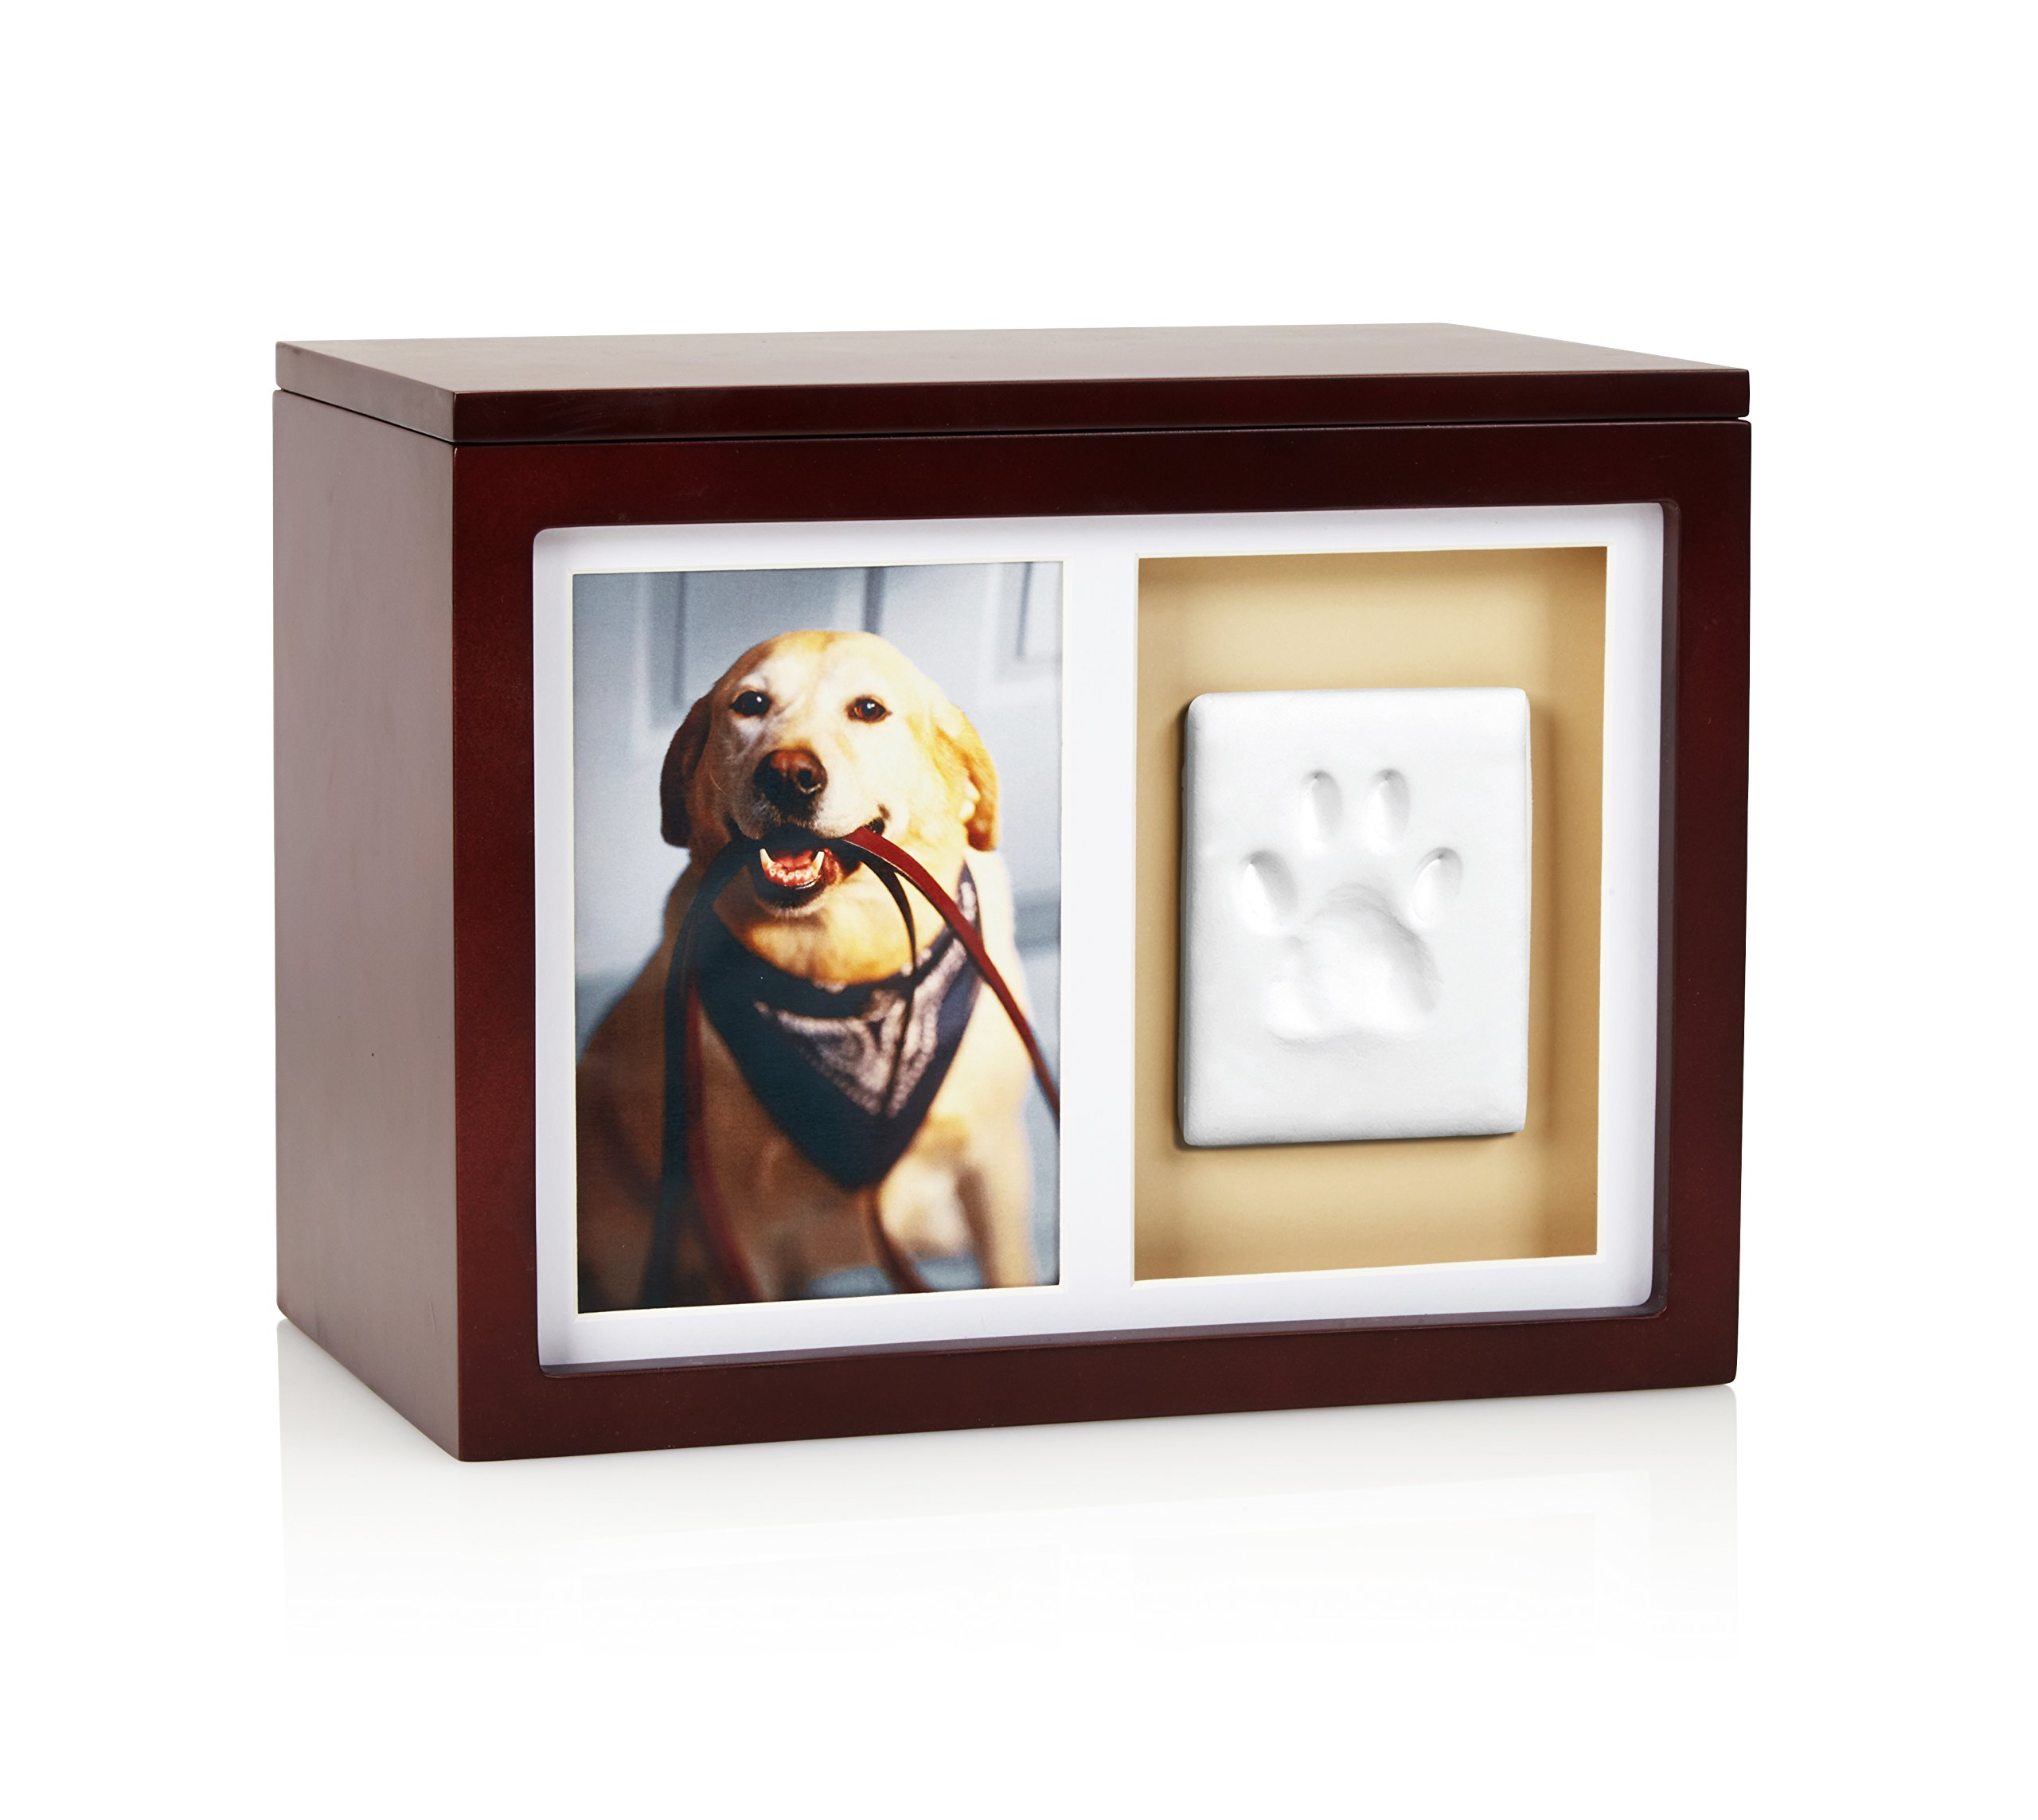 Pearhead Dog Or Cat Paw Prints Pet Memory Box With Clay Imprint Kit, Perfect Pet Memorial Espresso by Pearhead